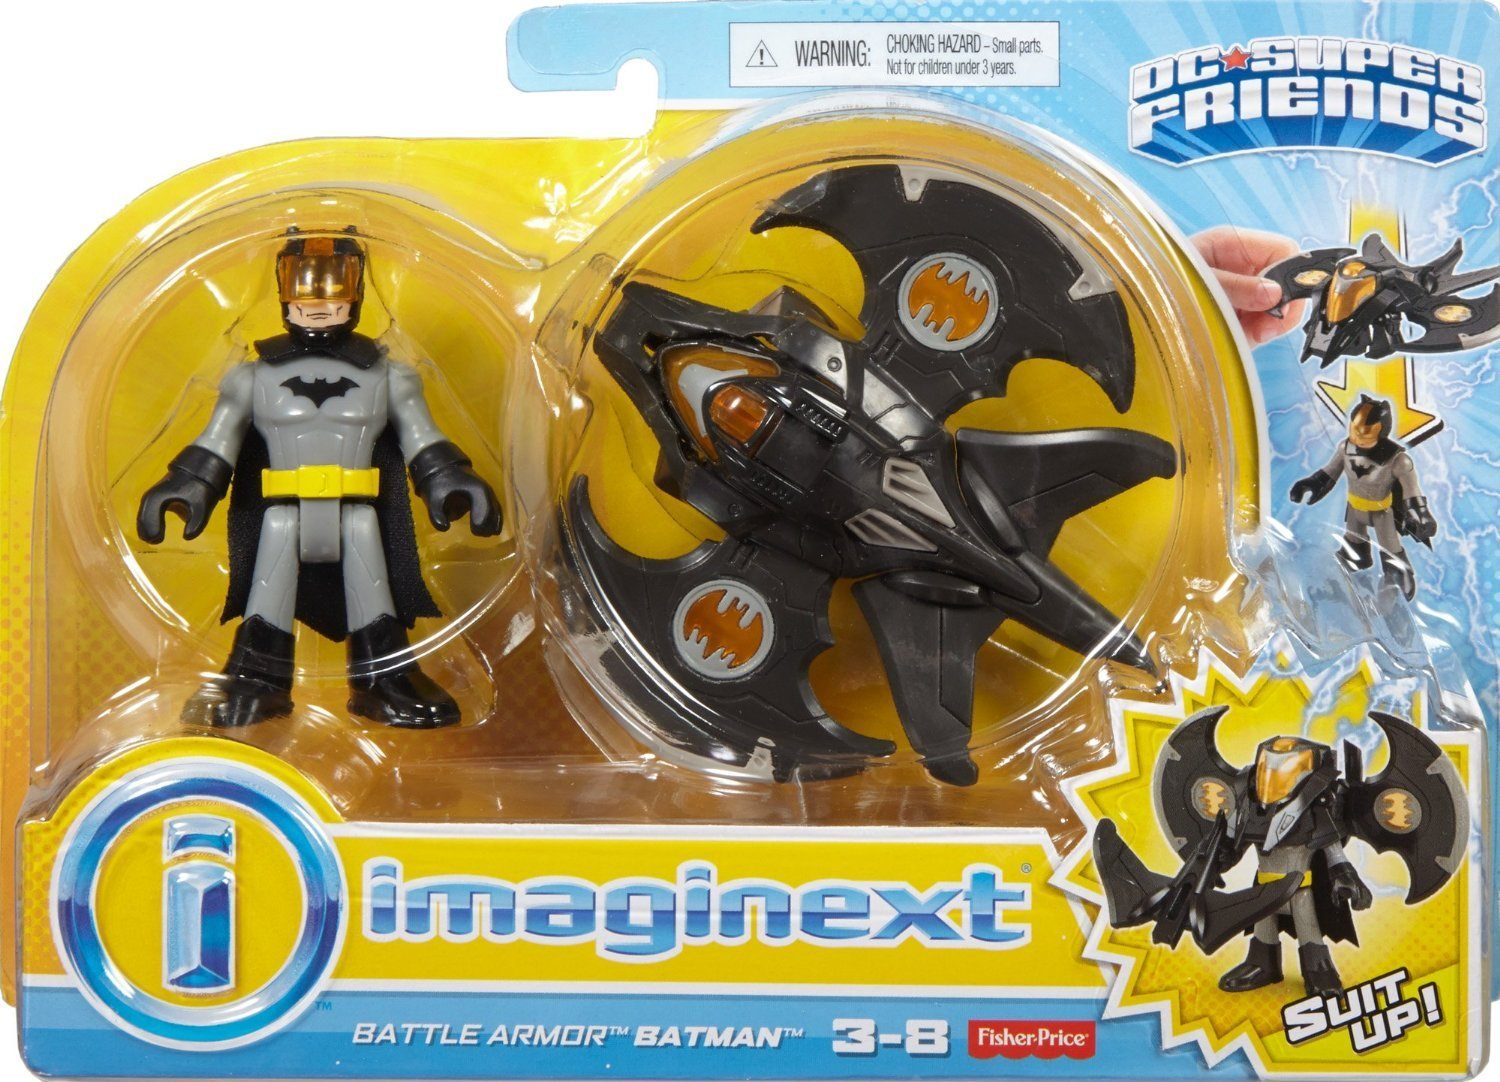 Imaginext DC Super Friends Battel Armor Batman - Three LiL Monkeys Three LiL Monkeys